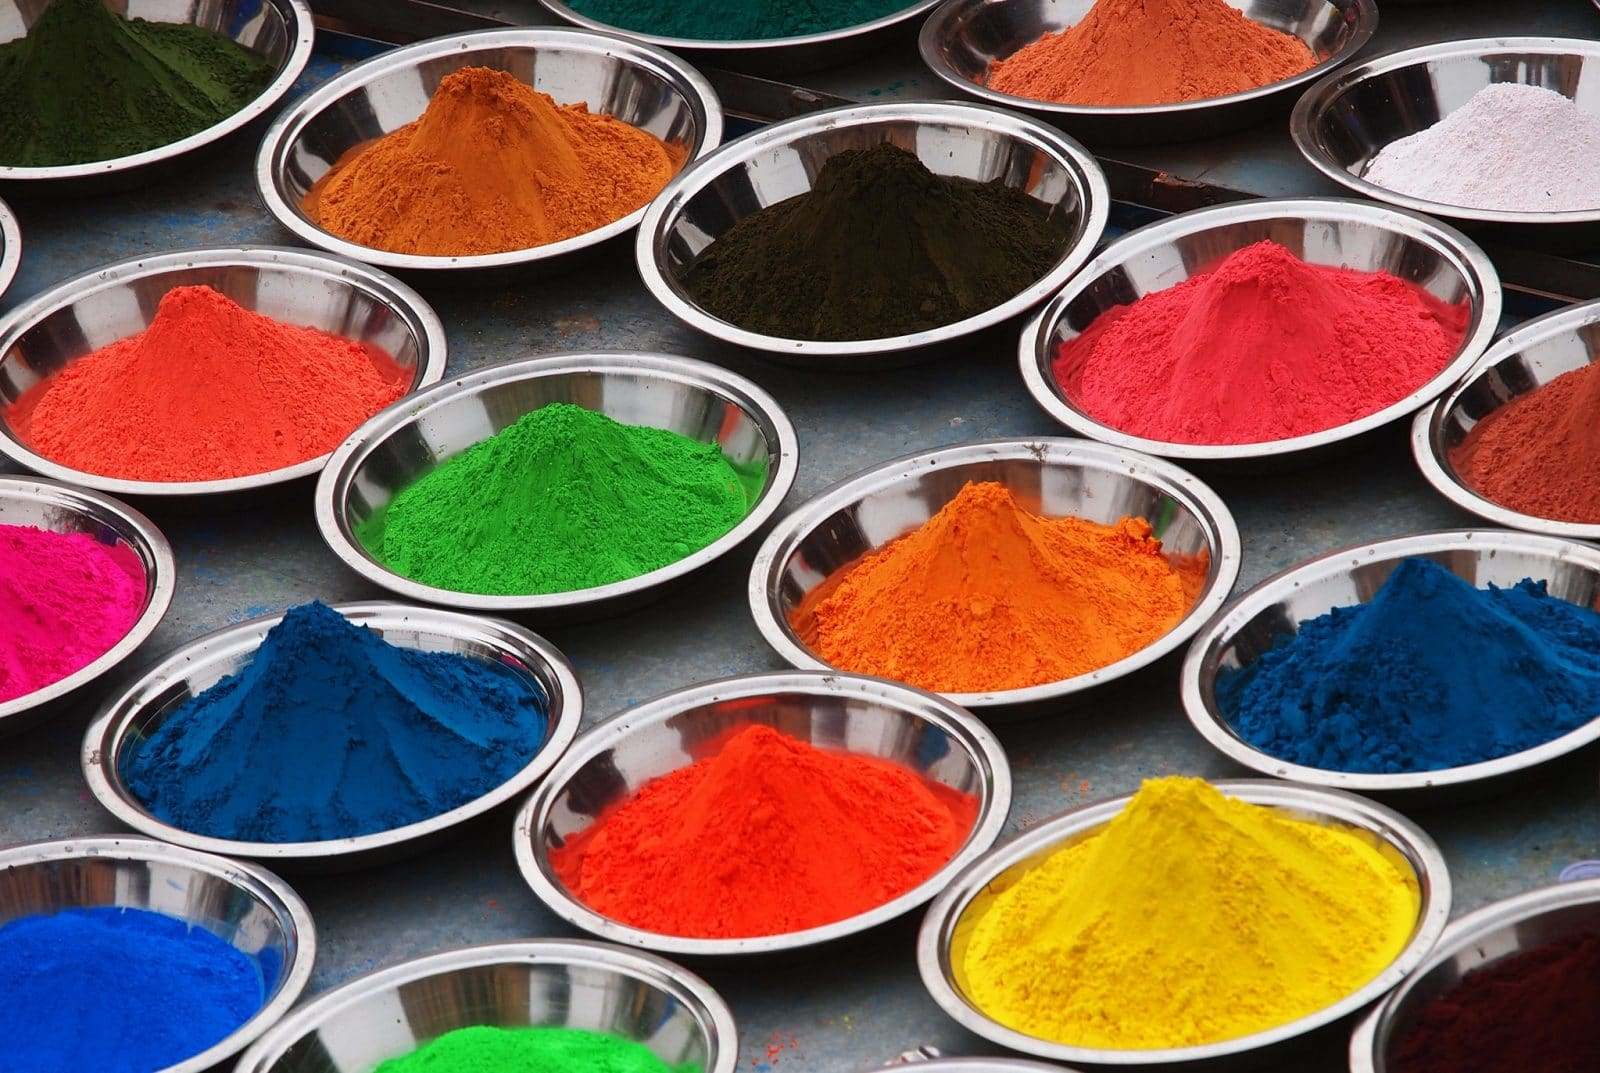 Food Coloring And Its Effect On Food Quality